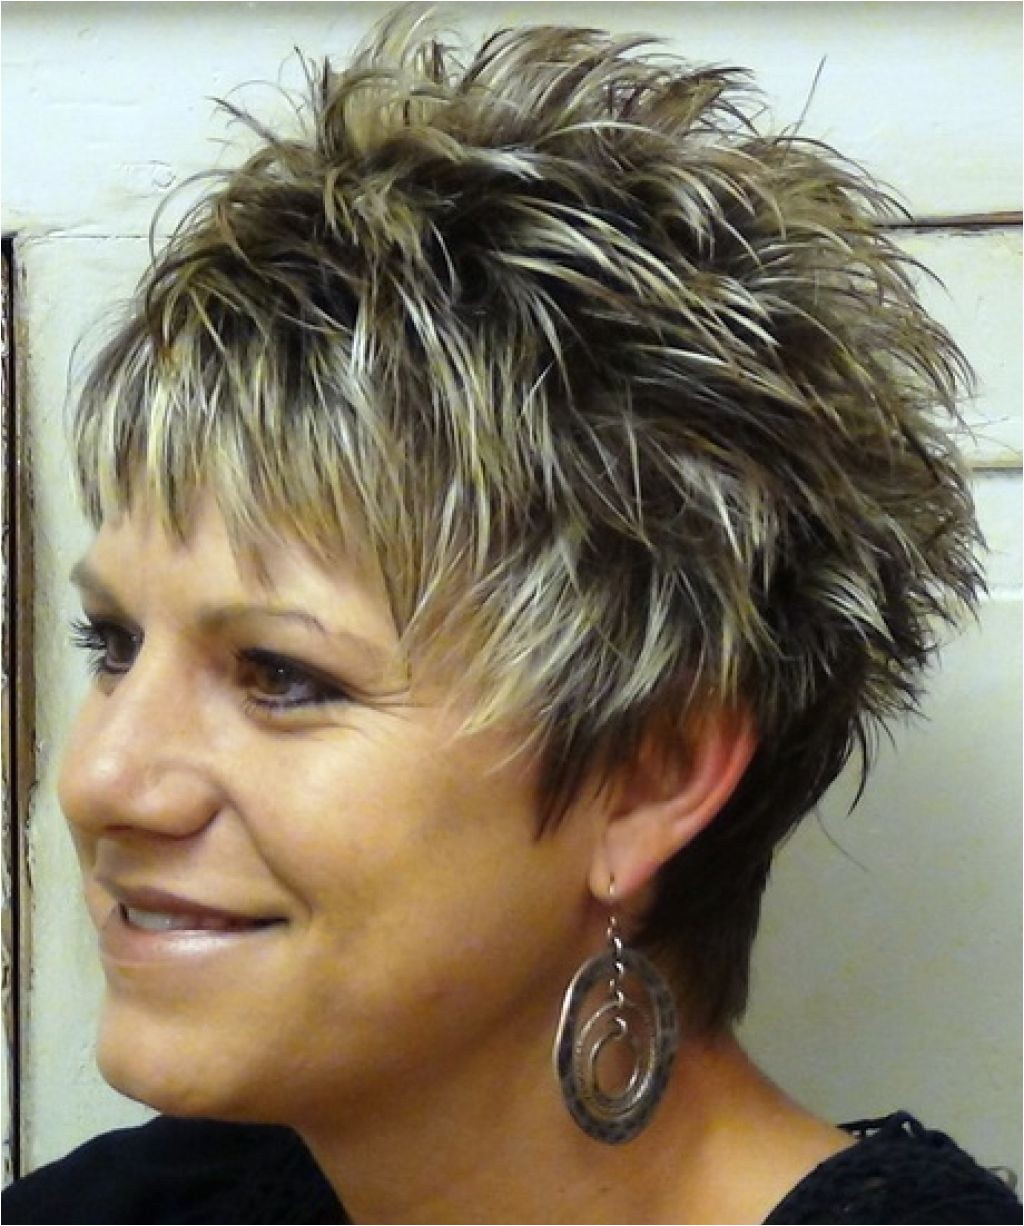 Short Spiky Pixie Hairstyles Awesome Hairstyles An Cuts Lovely Haircuts Frat Haircuts 0d Improvestyle